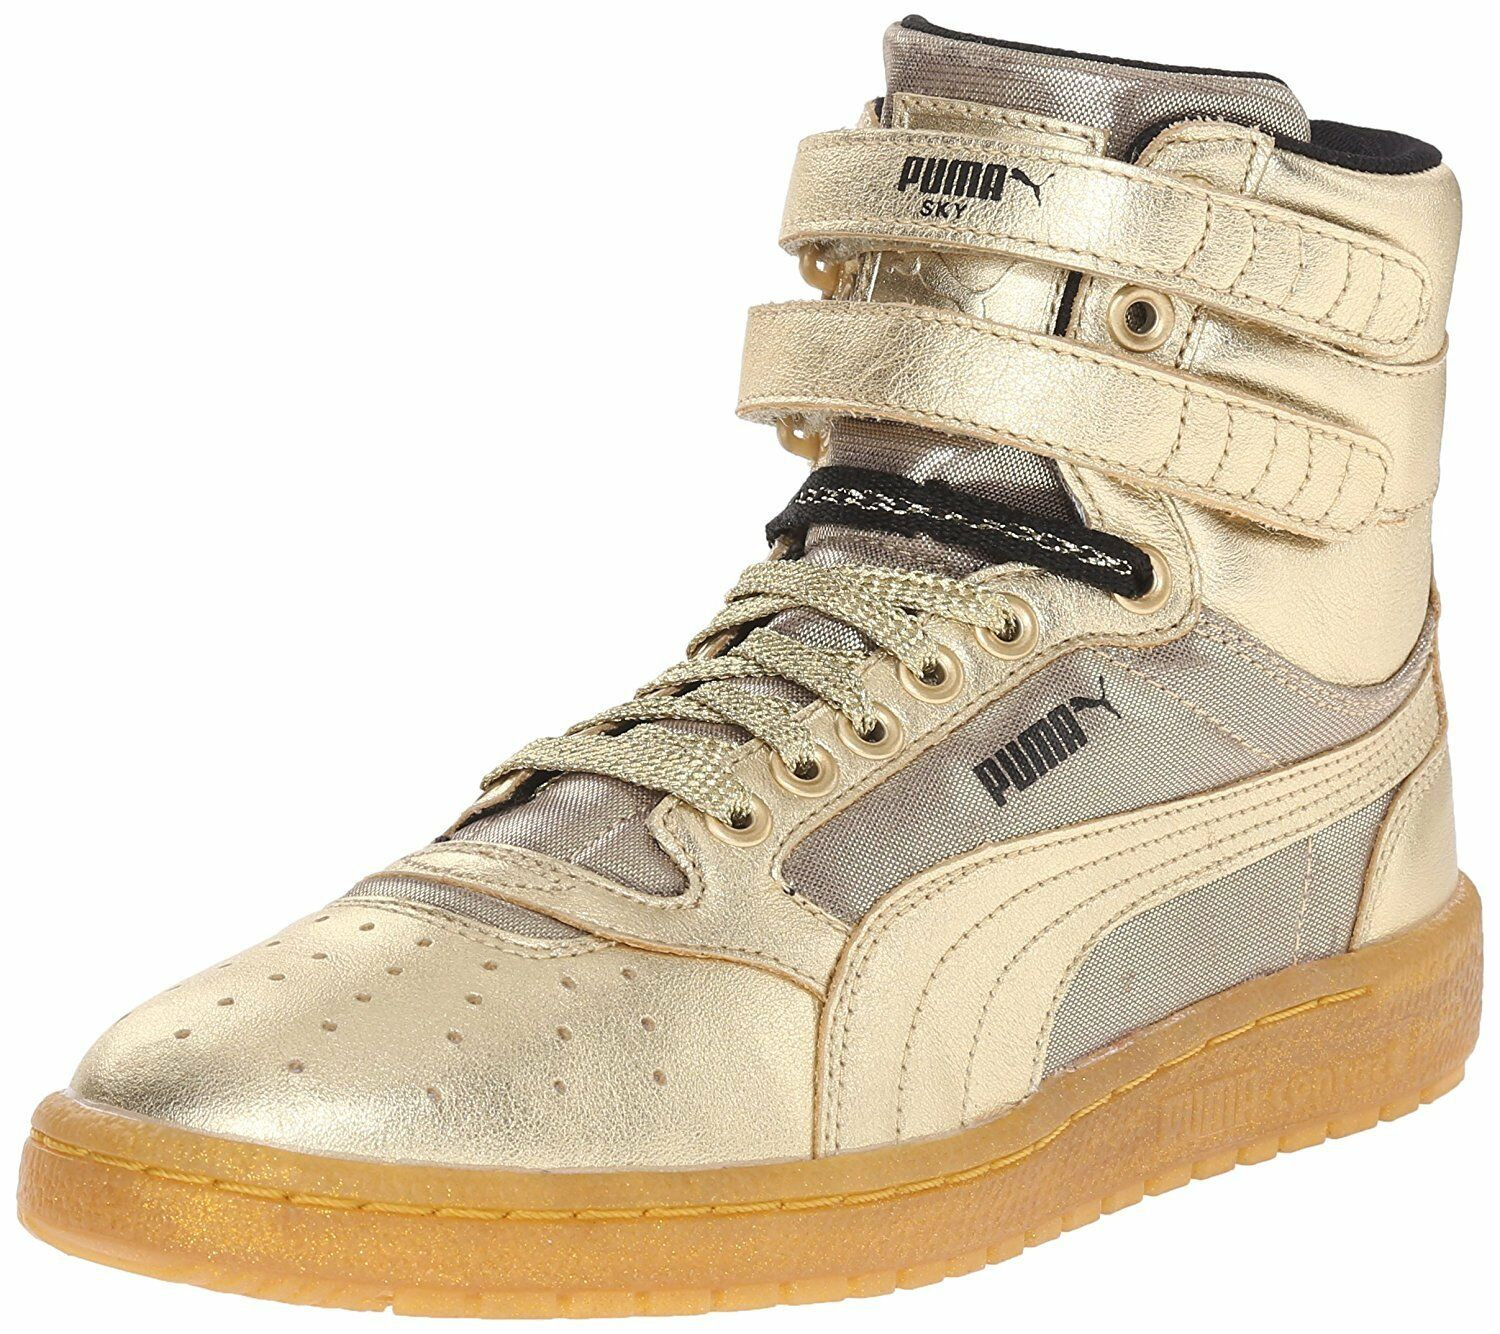 Puma Sky II Hi Metallic gold Women Sz 6.5 - 8